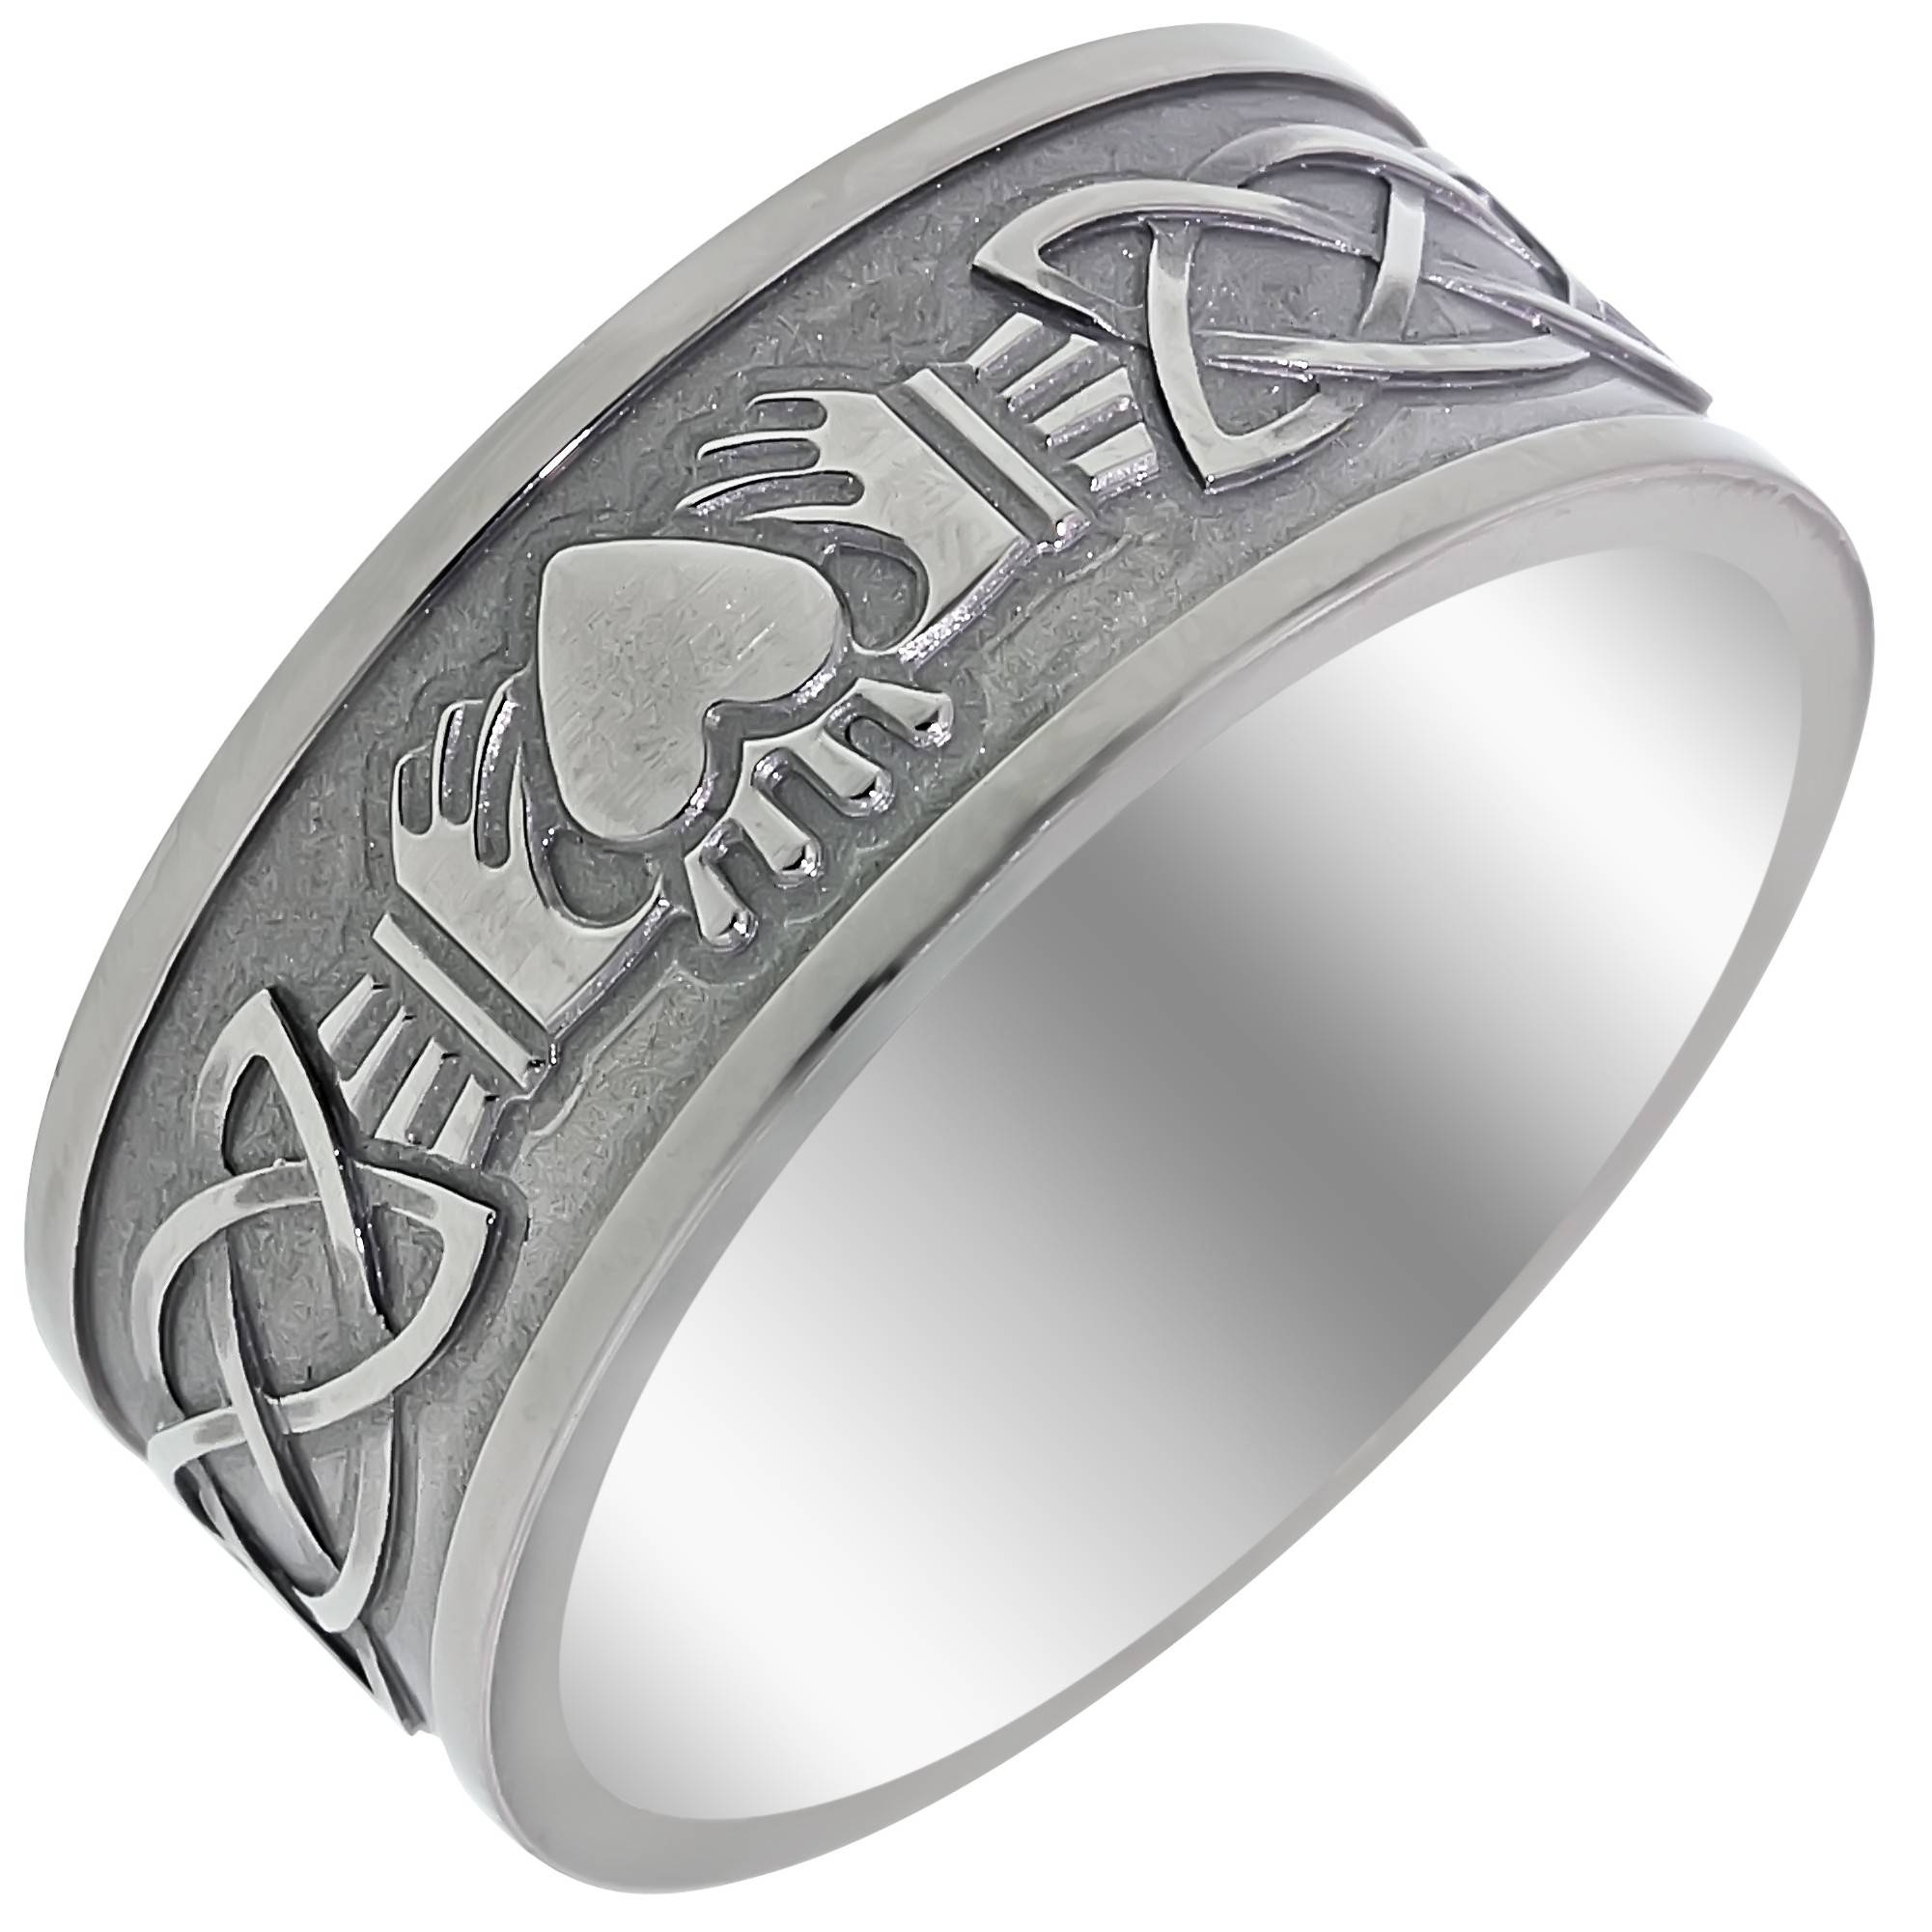 Mens Claddagh Celtic Wedding Band In Titanium (9mm) Within Men's Claddagh Wedding Bands (View 1 of 10)